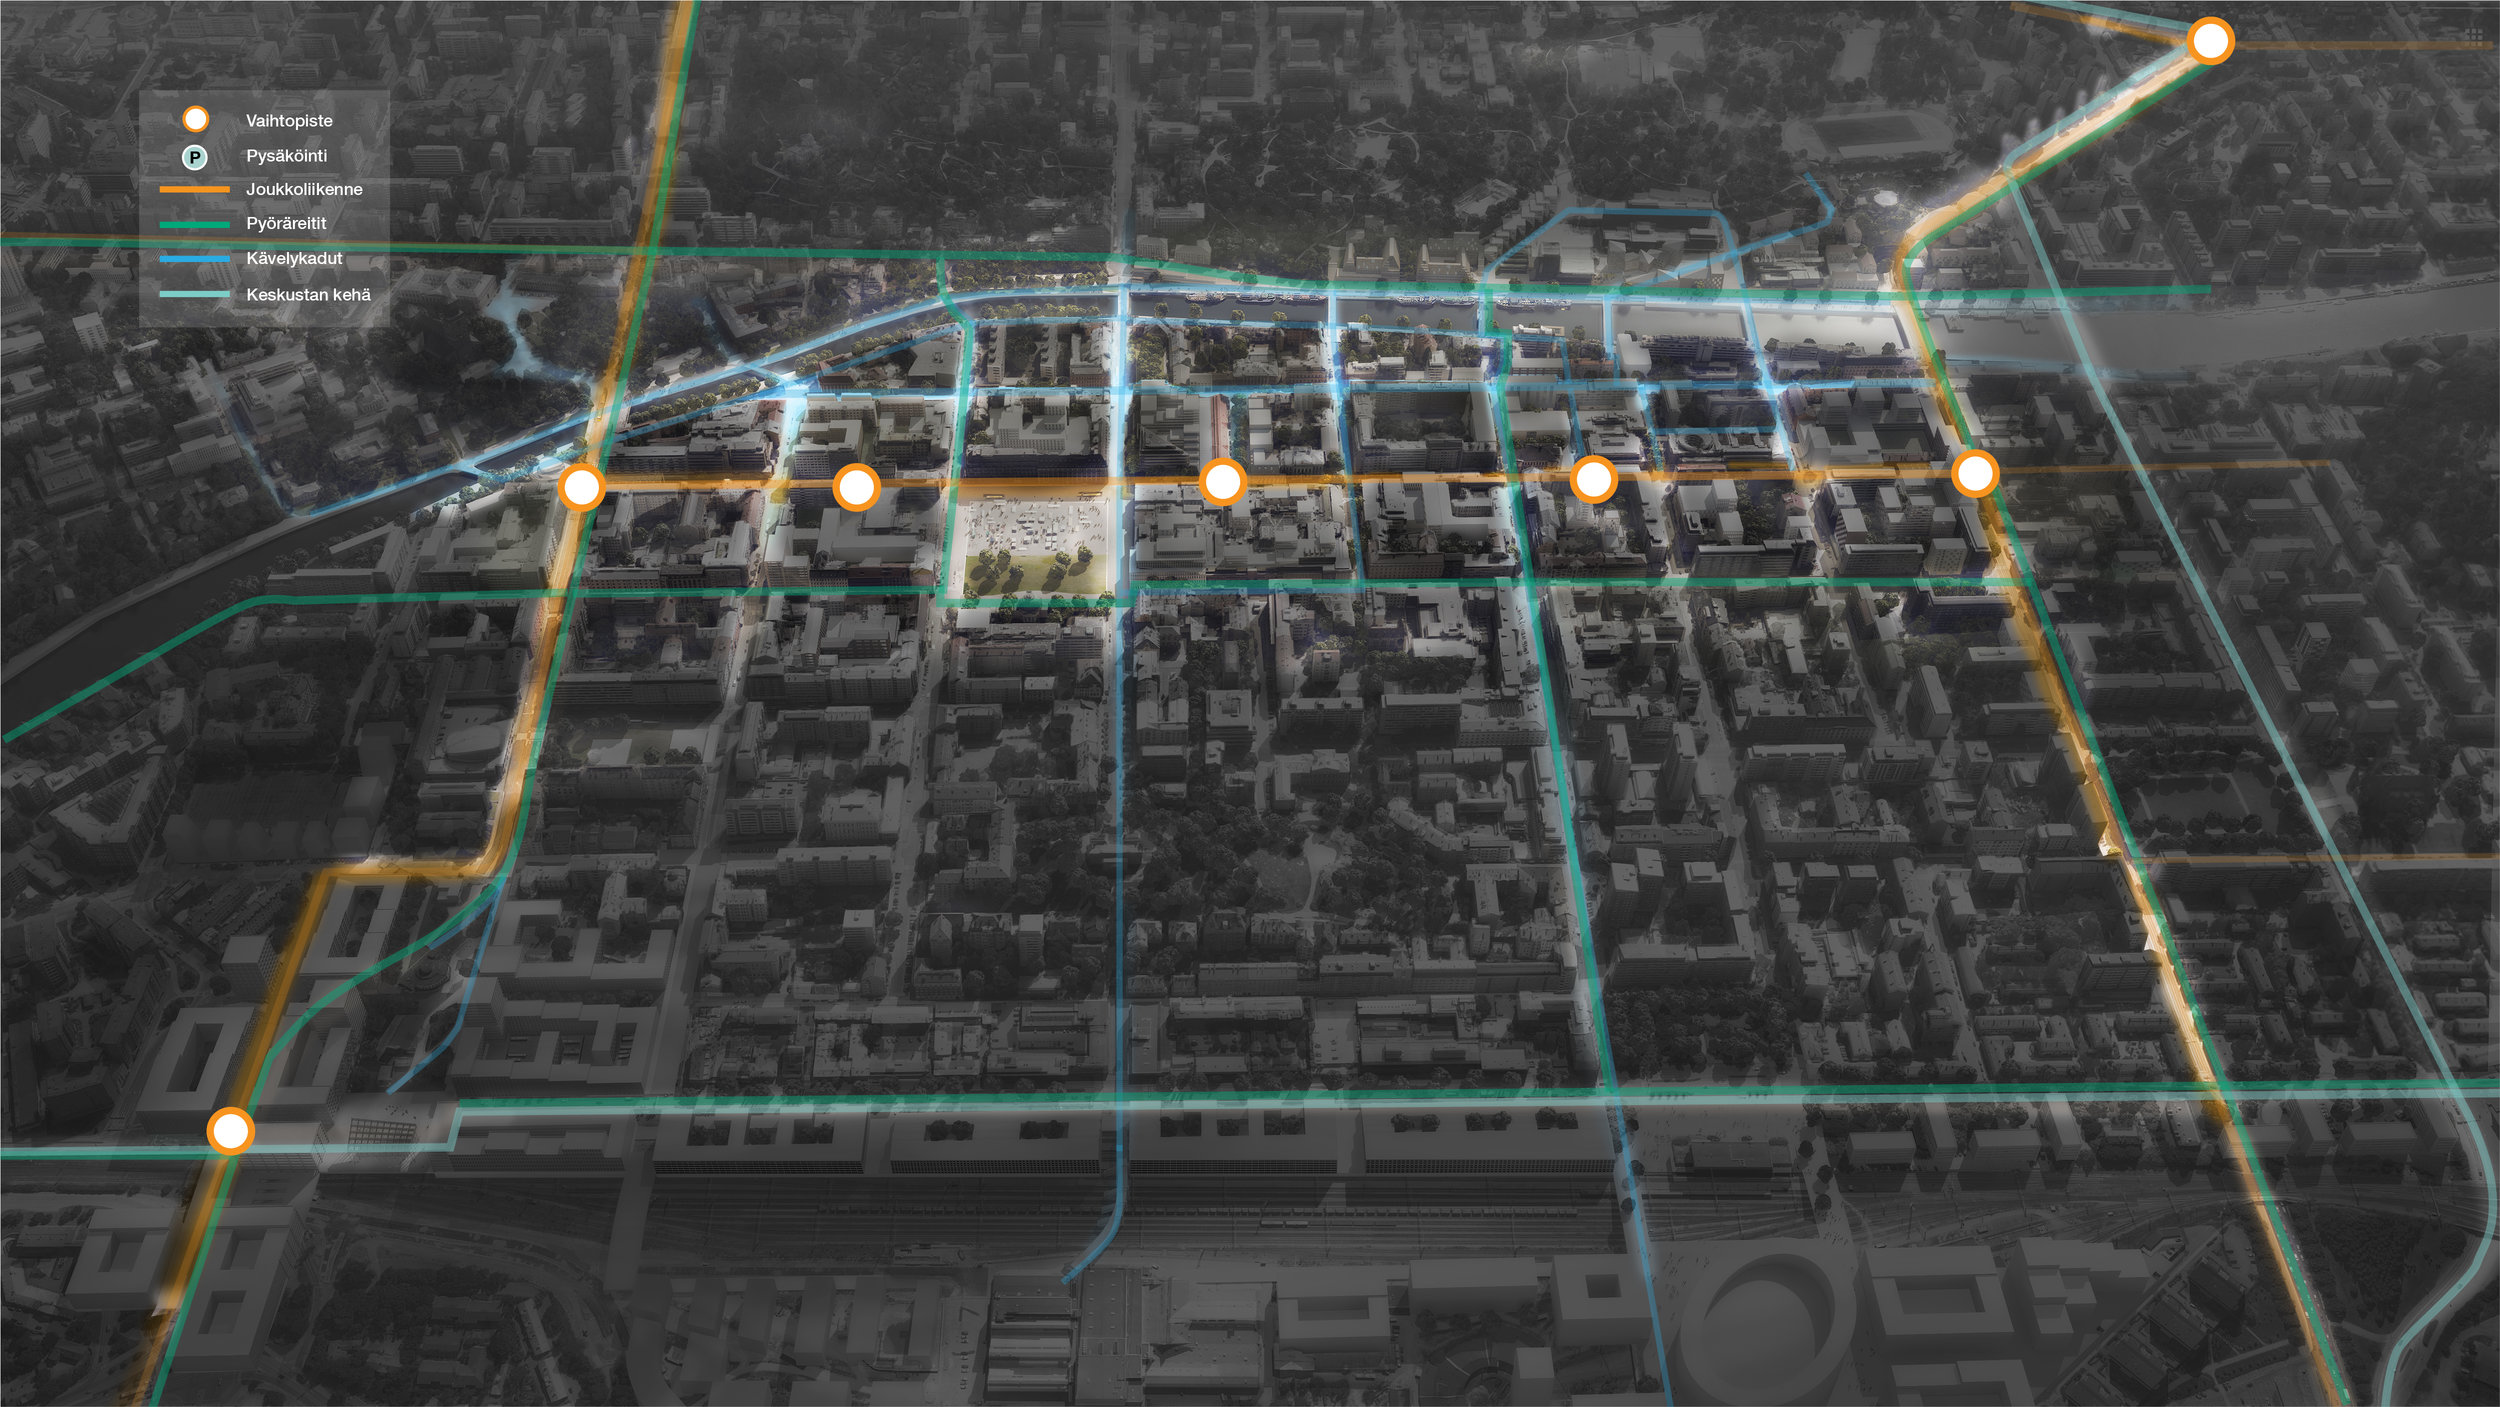 A vision for the future traffic network of Turku